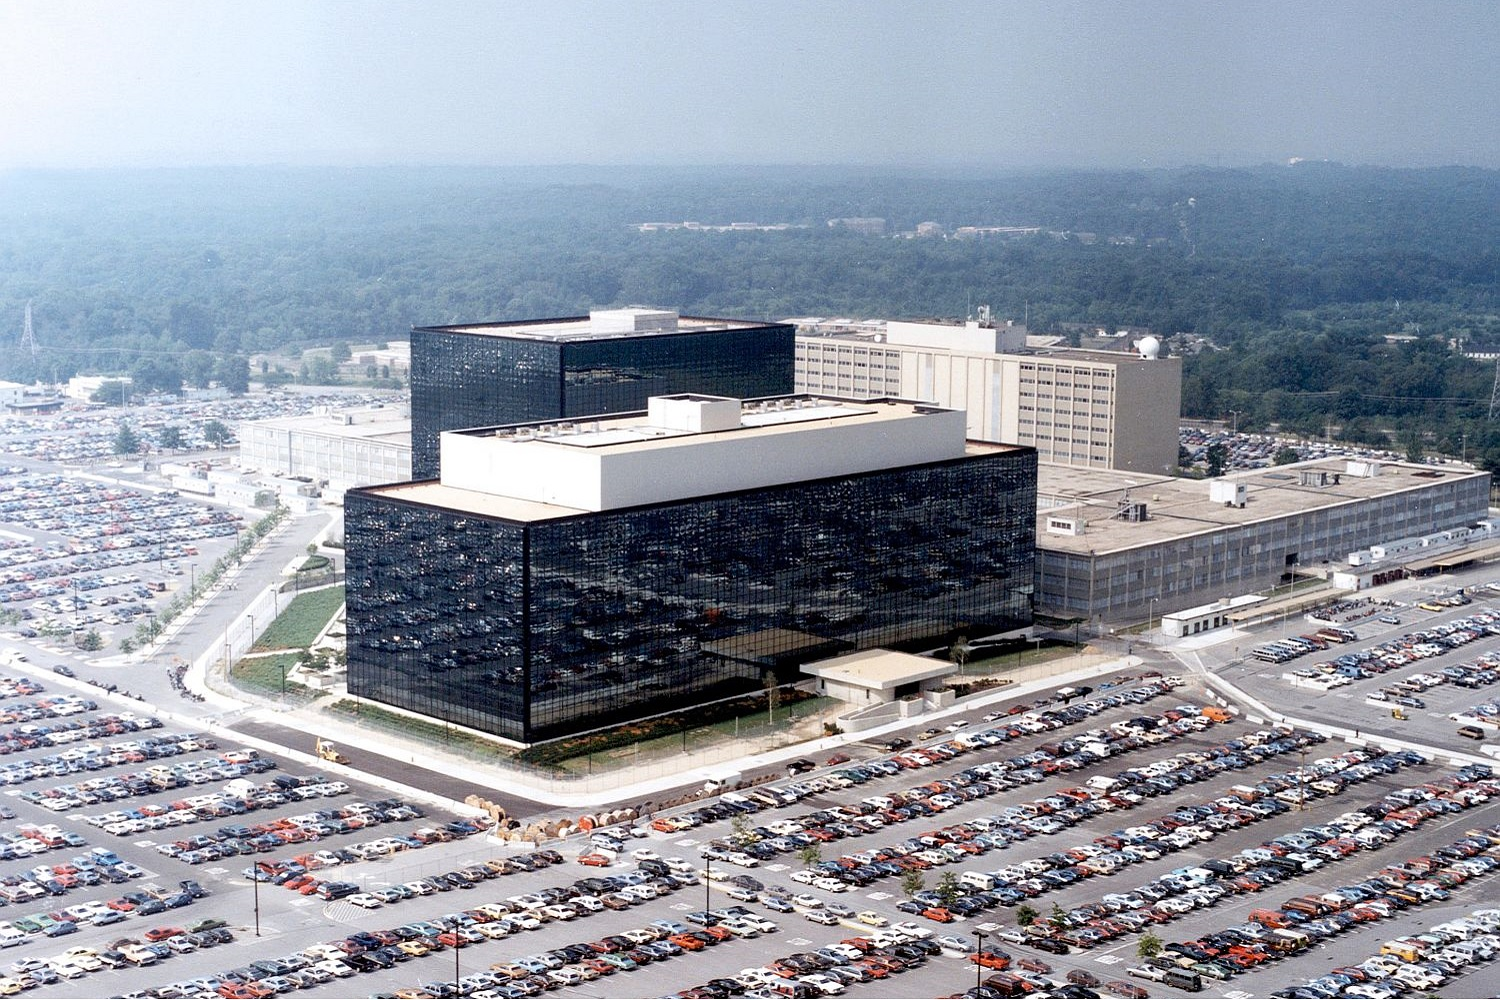 [Photo: National Security Agency, Ft. Meade, MD via Wikimedia]